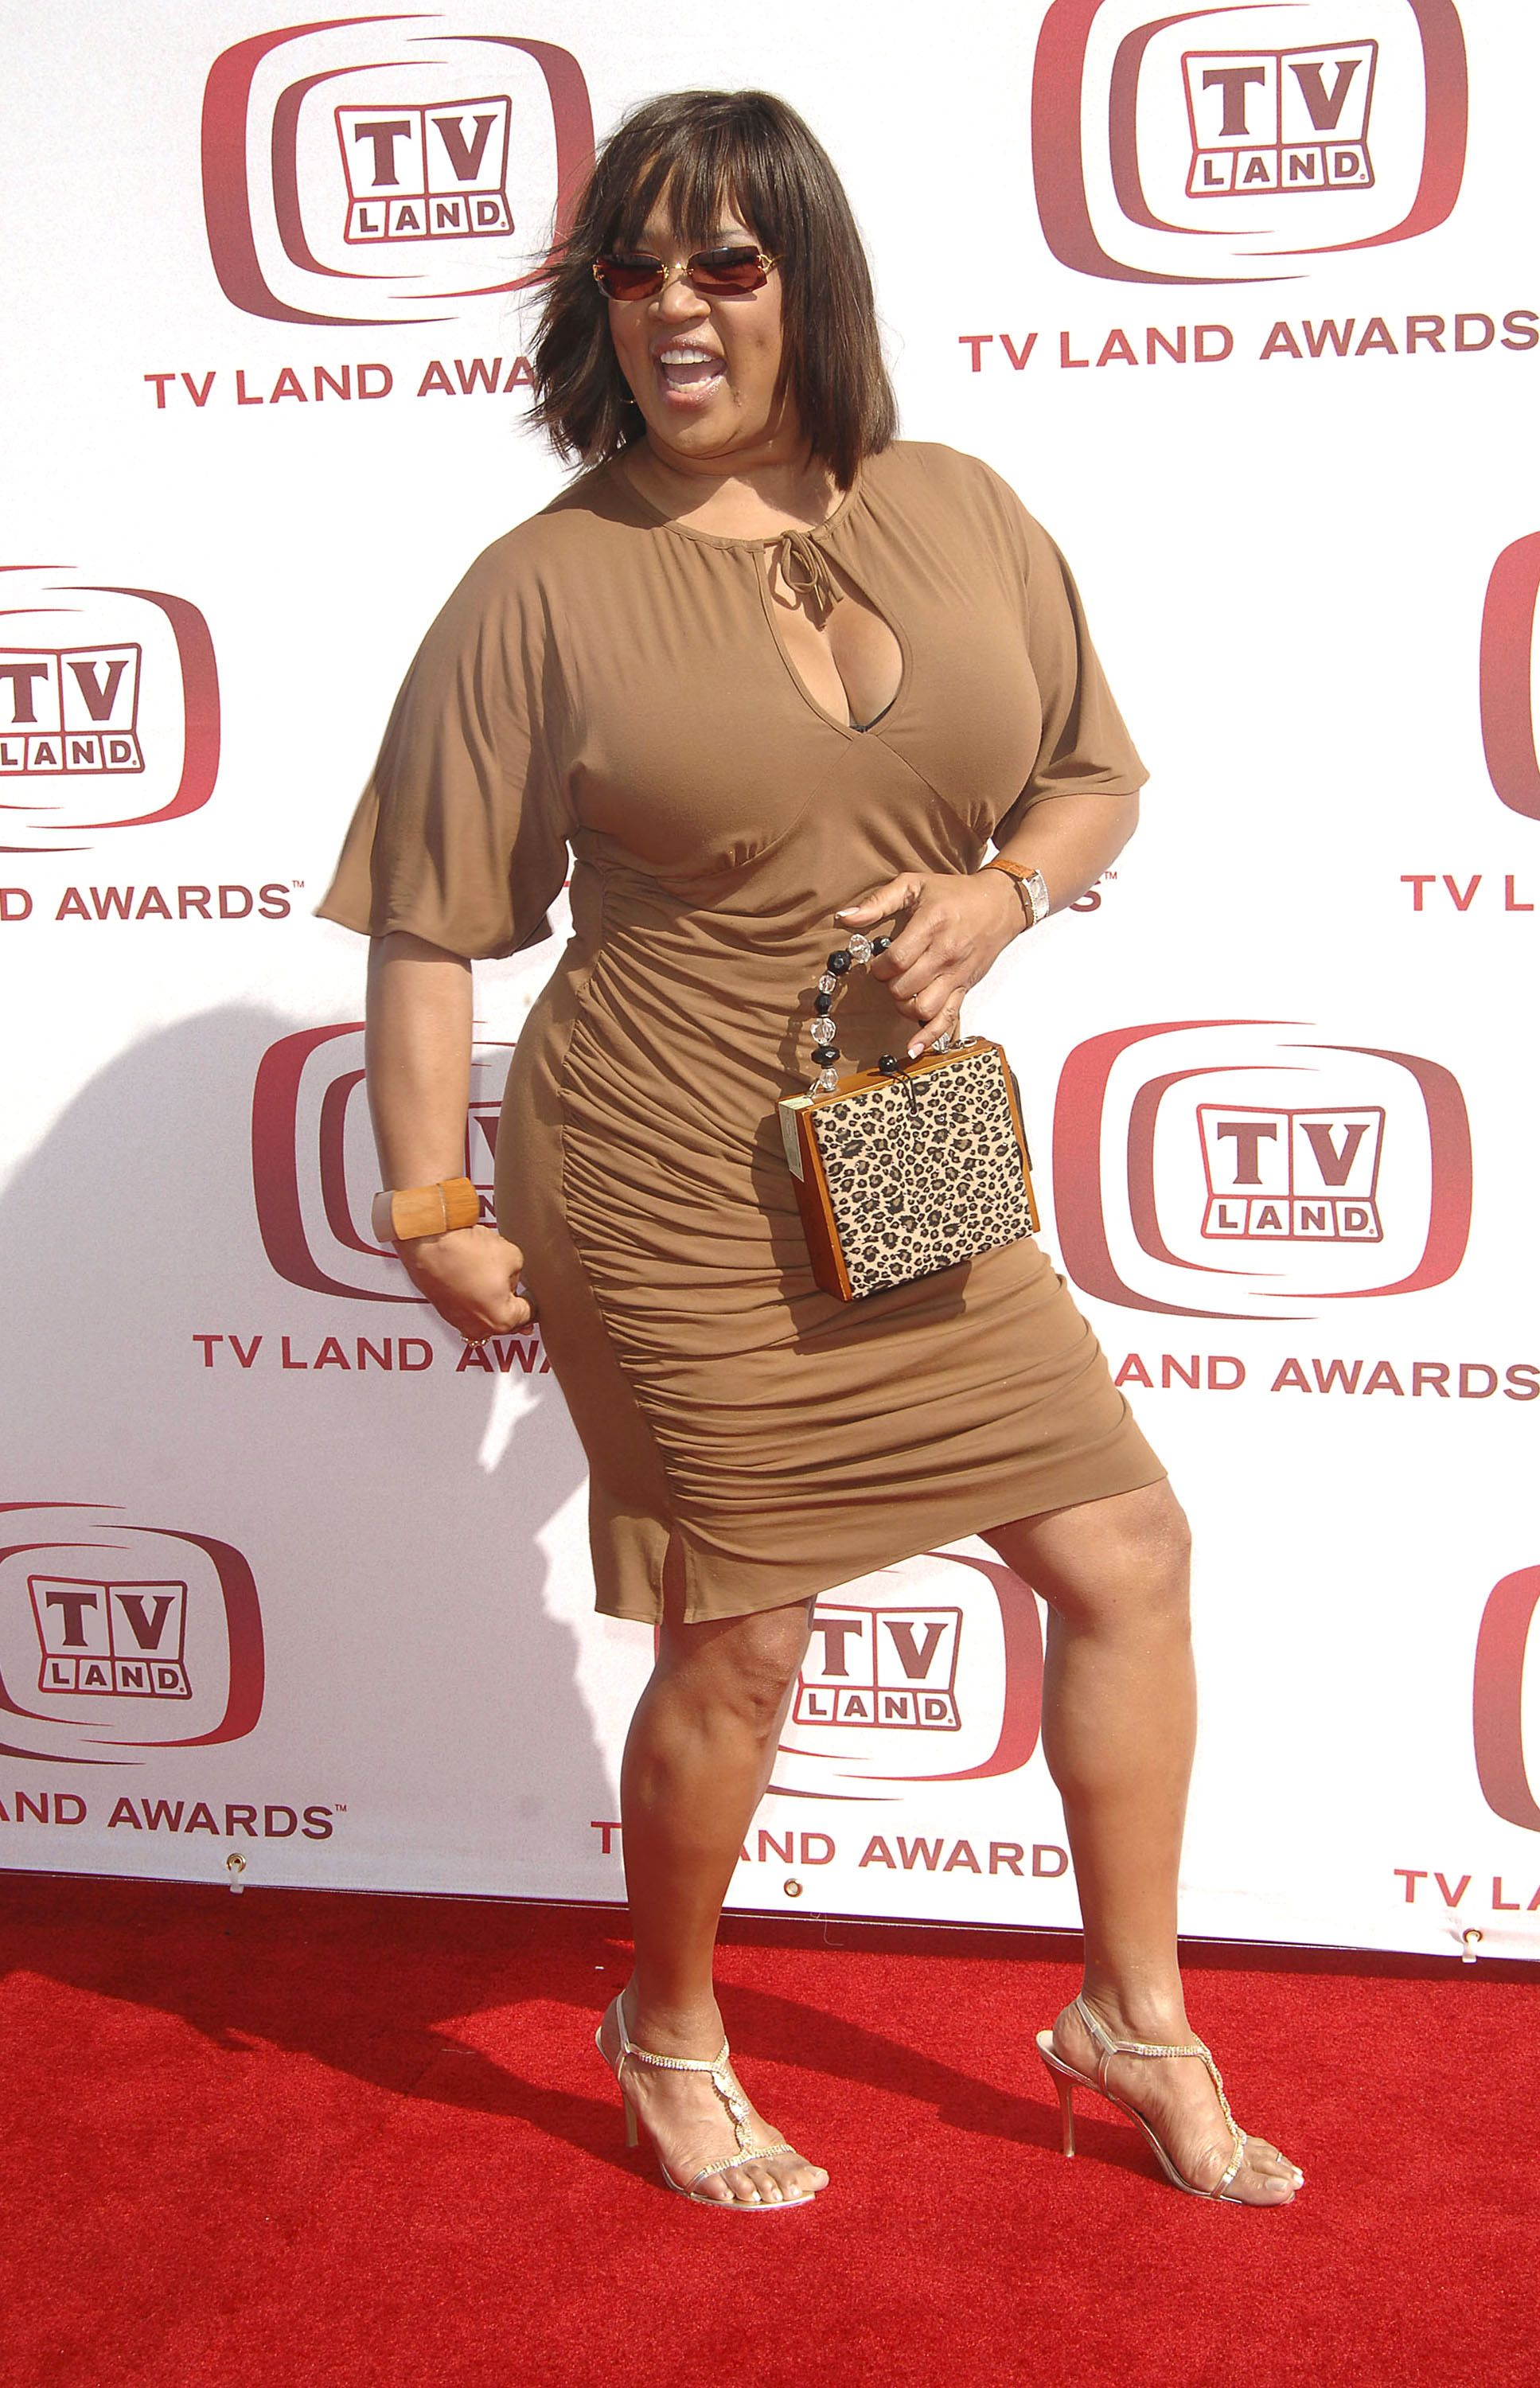 Kym Whitley naked (55 foto and video), Tits, Leaked, Instagram, braless 2018